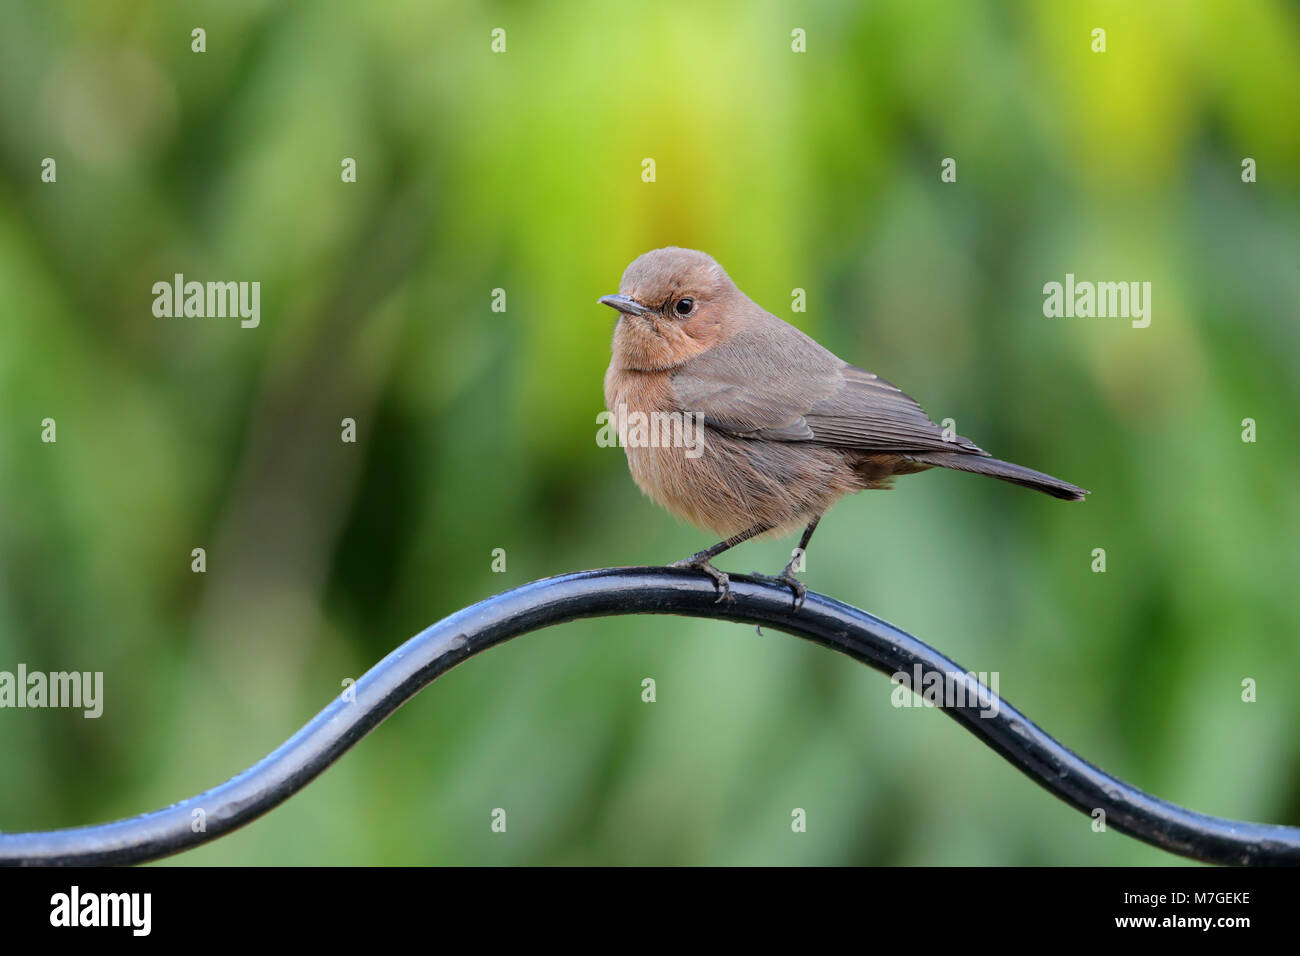 An adult Brown Rock Chat (Oenanthe fusca) bird perched in a garden in Nawalgarh, Rajasthan, India - Stock Image